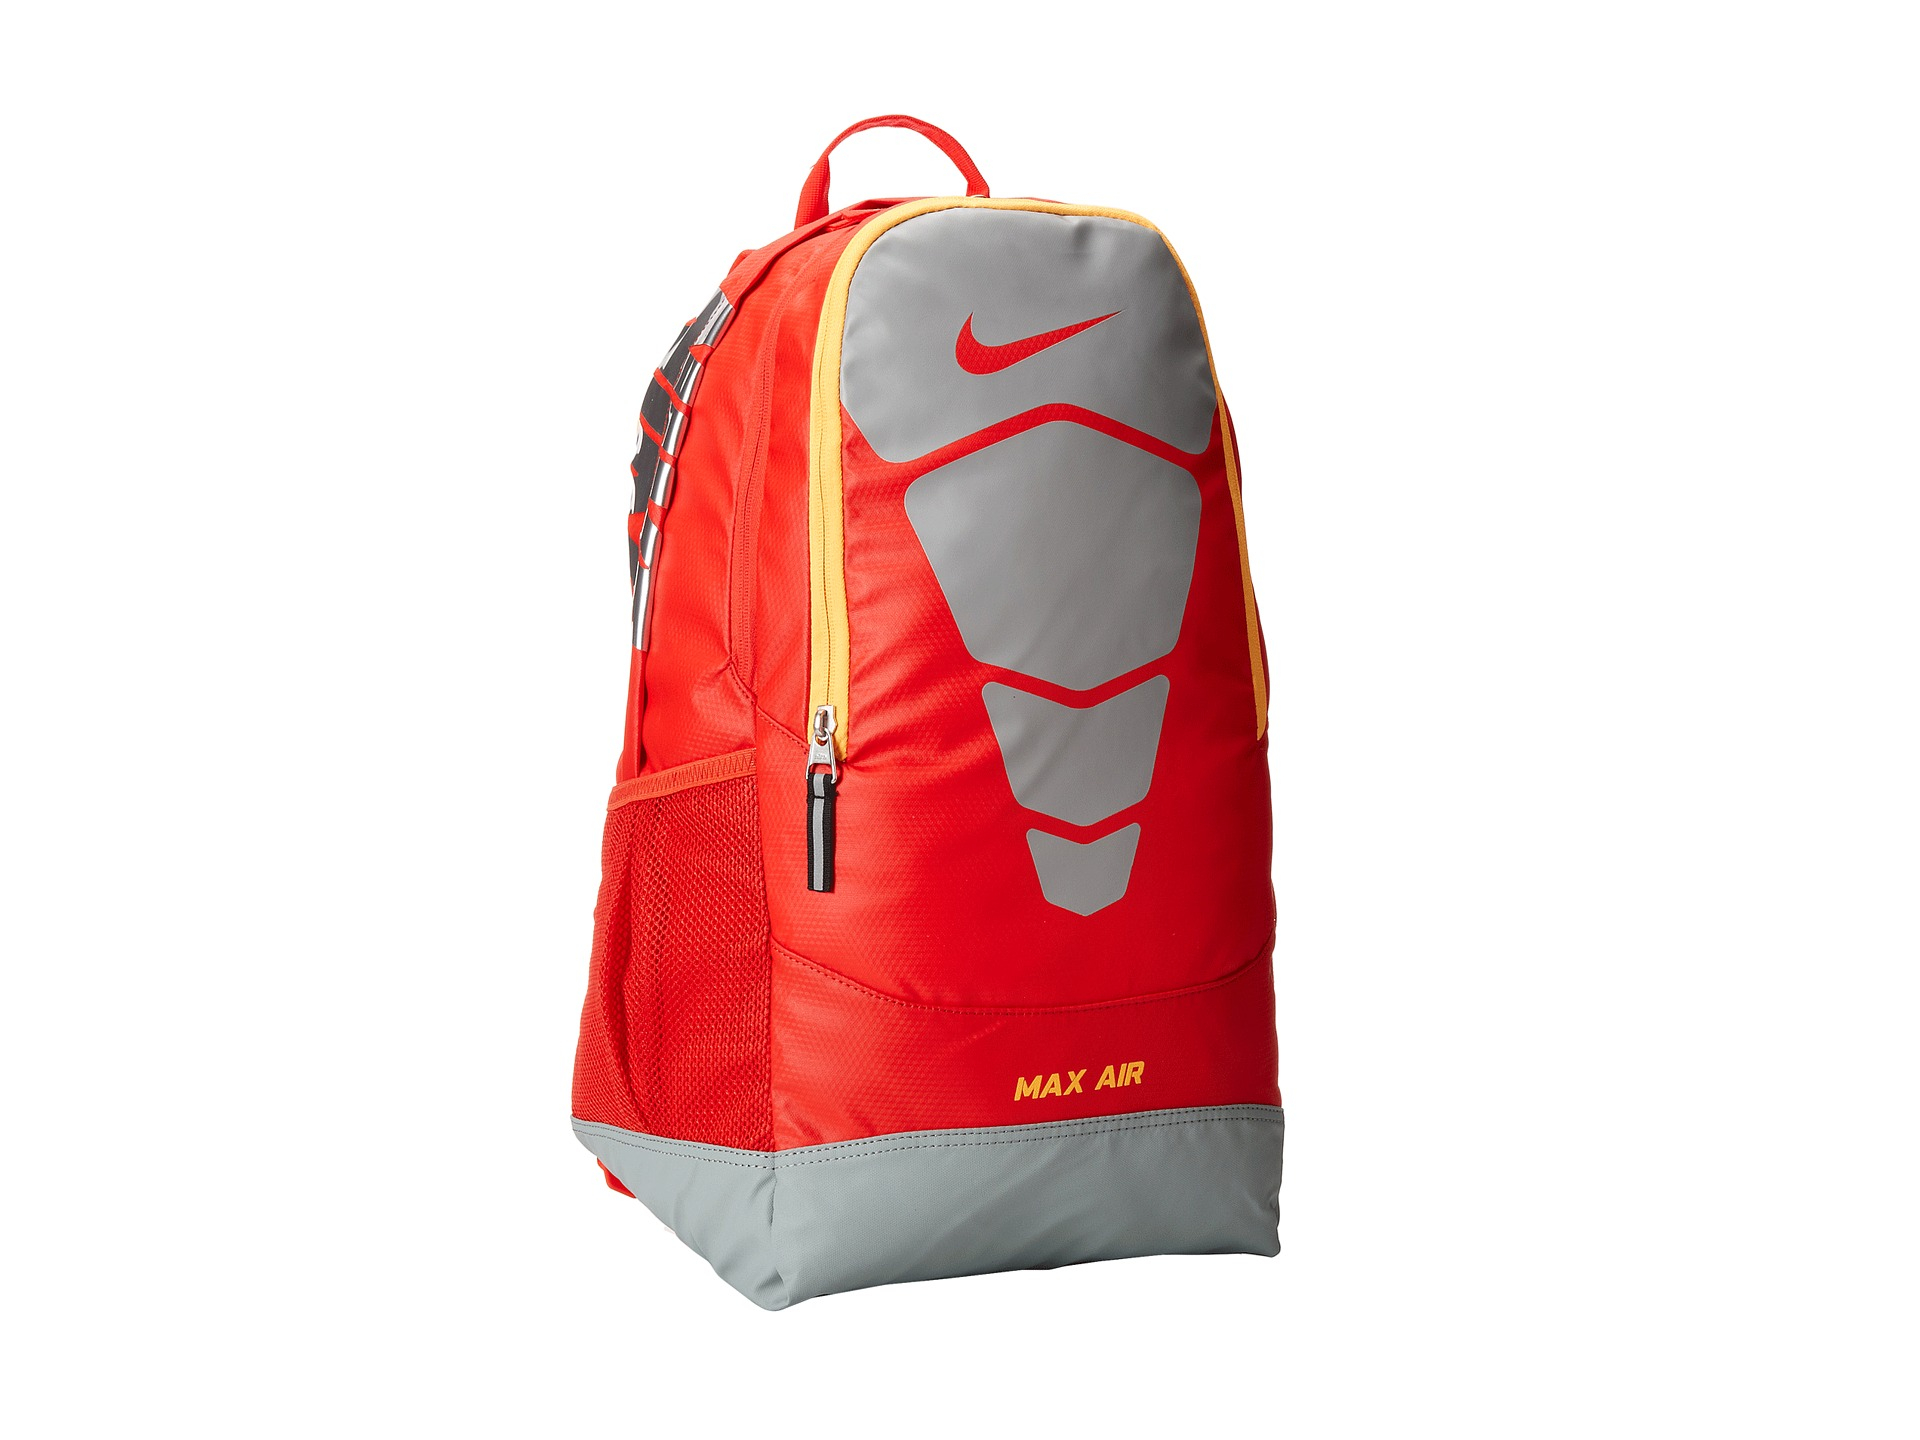 418f34c968 Nike - Red Vapor Max Air Backpack for Men - Lyst